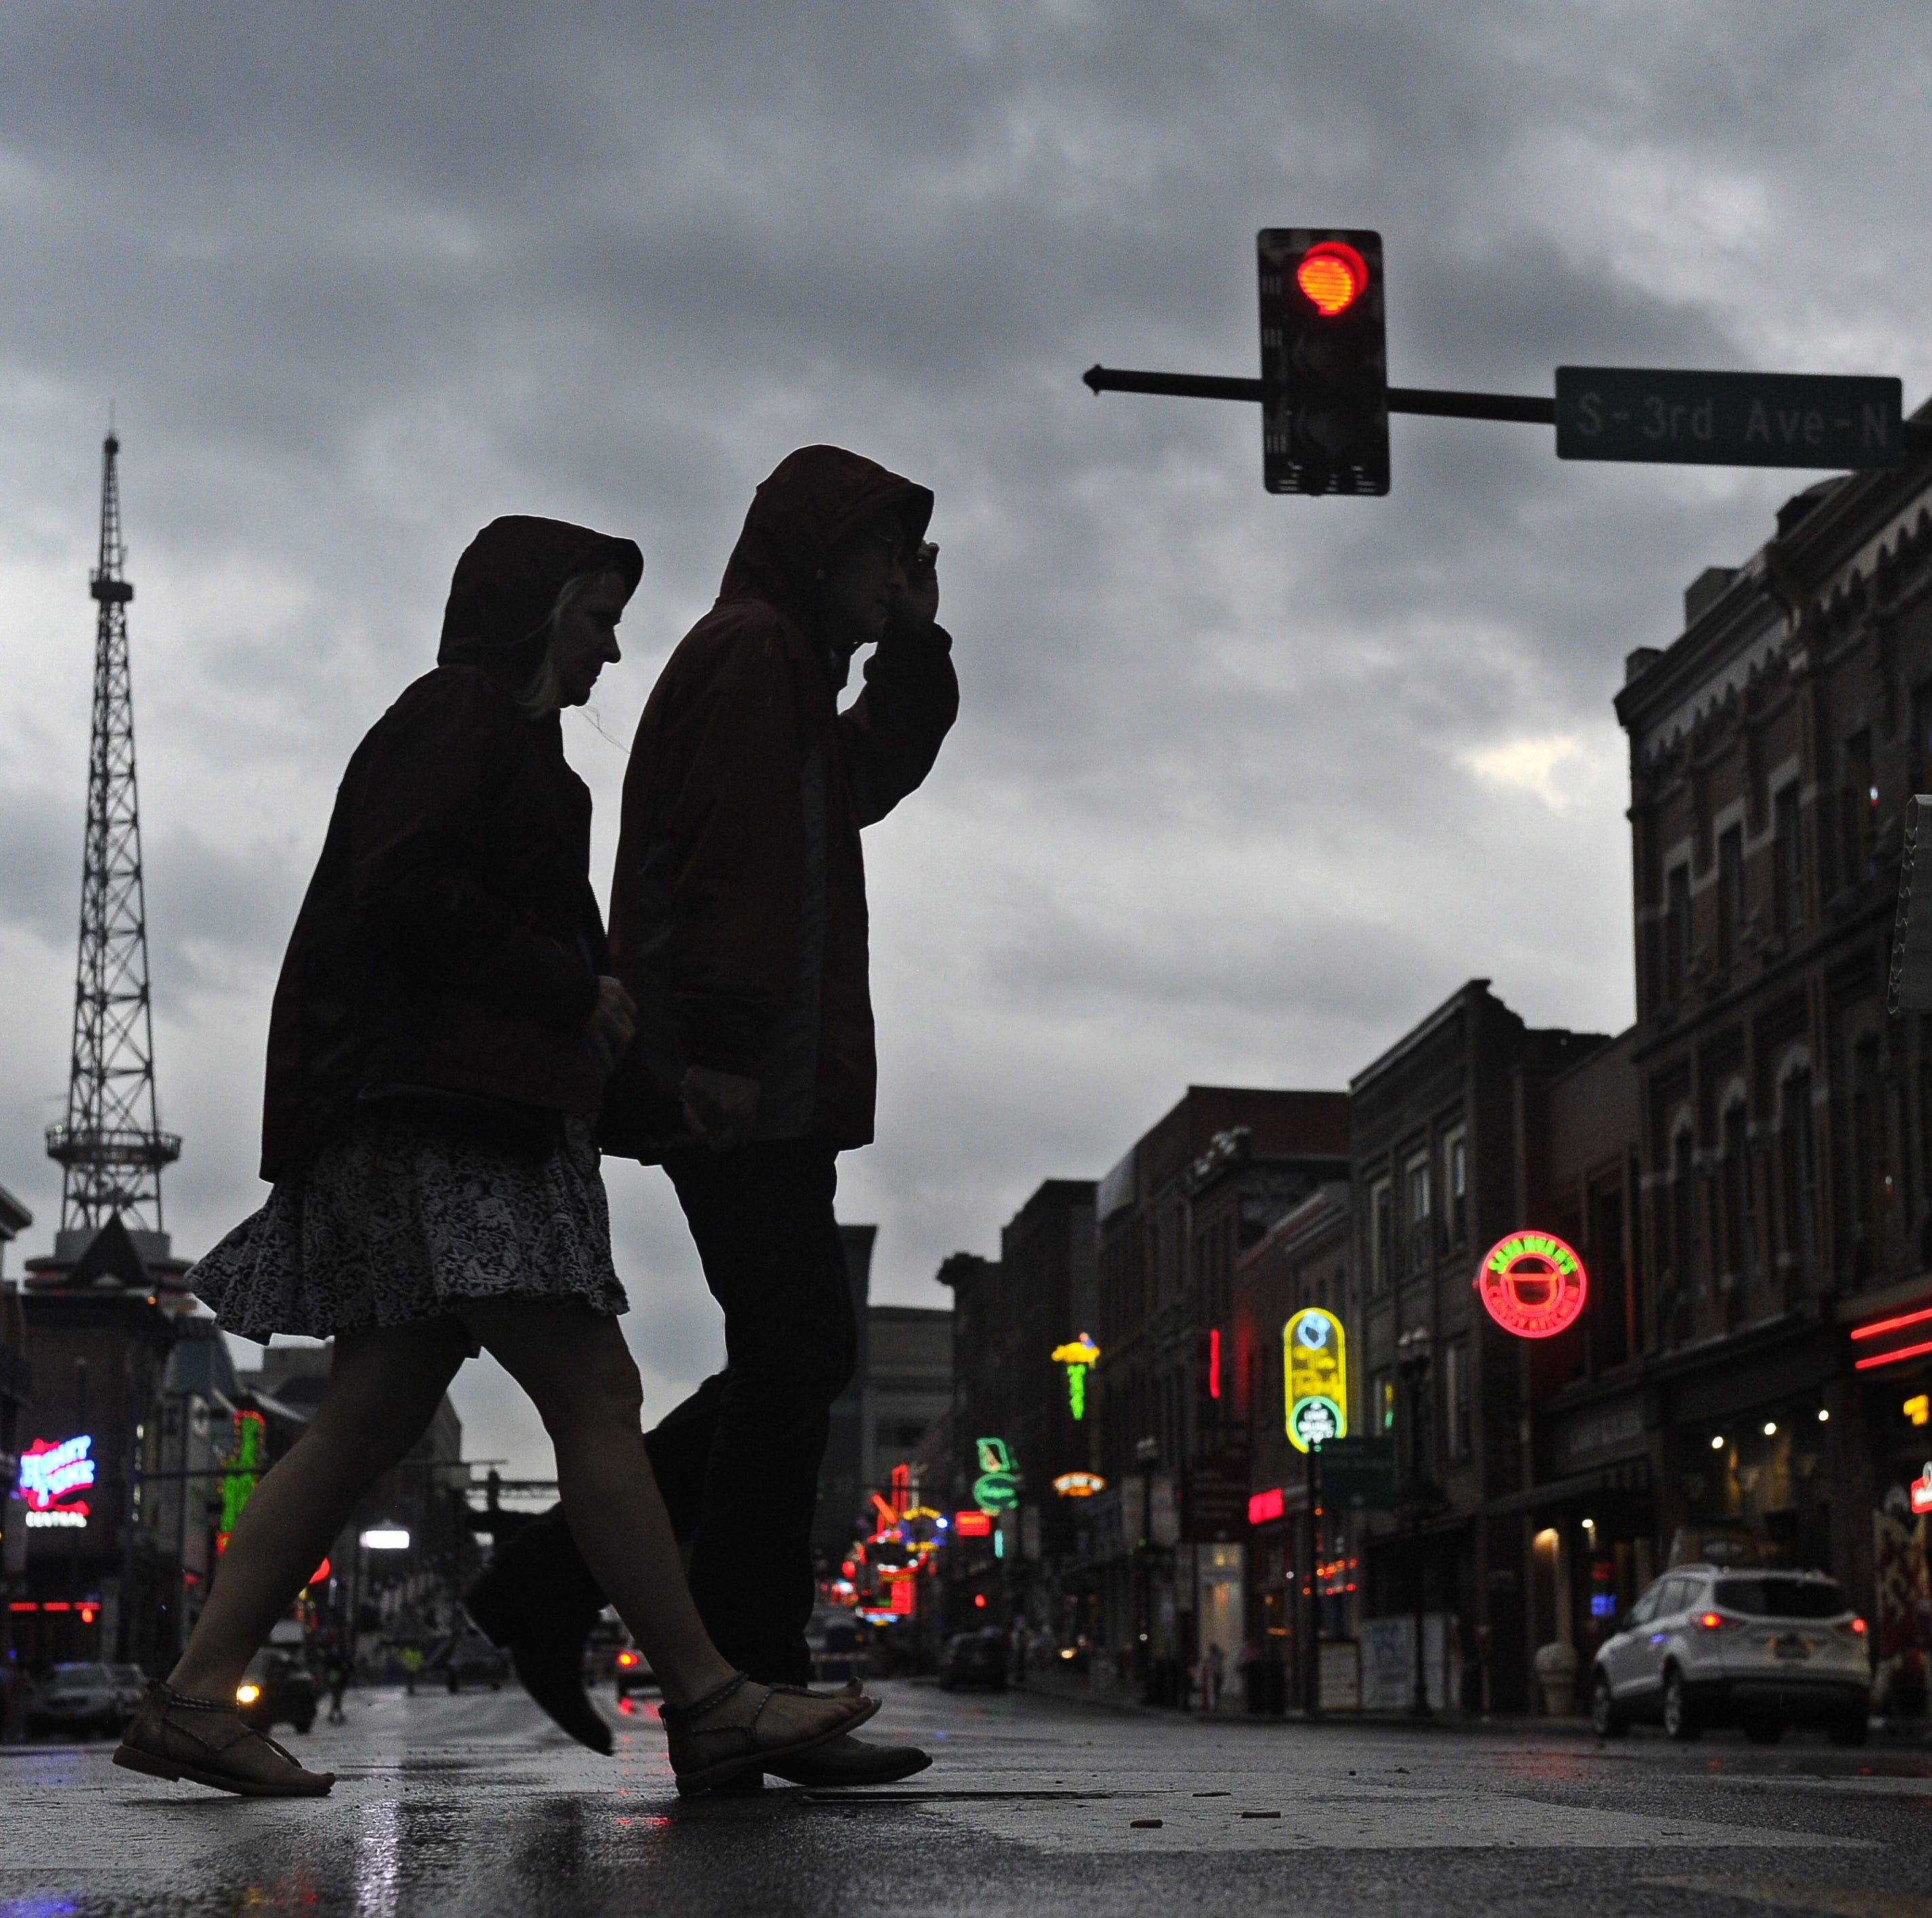 Forecast: Severe storms moving through Middle Tennessee overnight